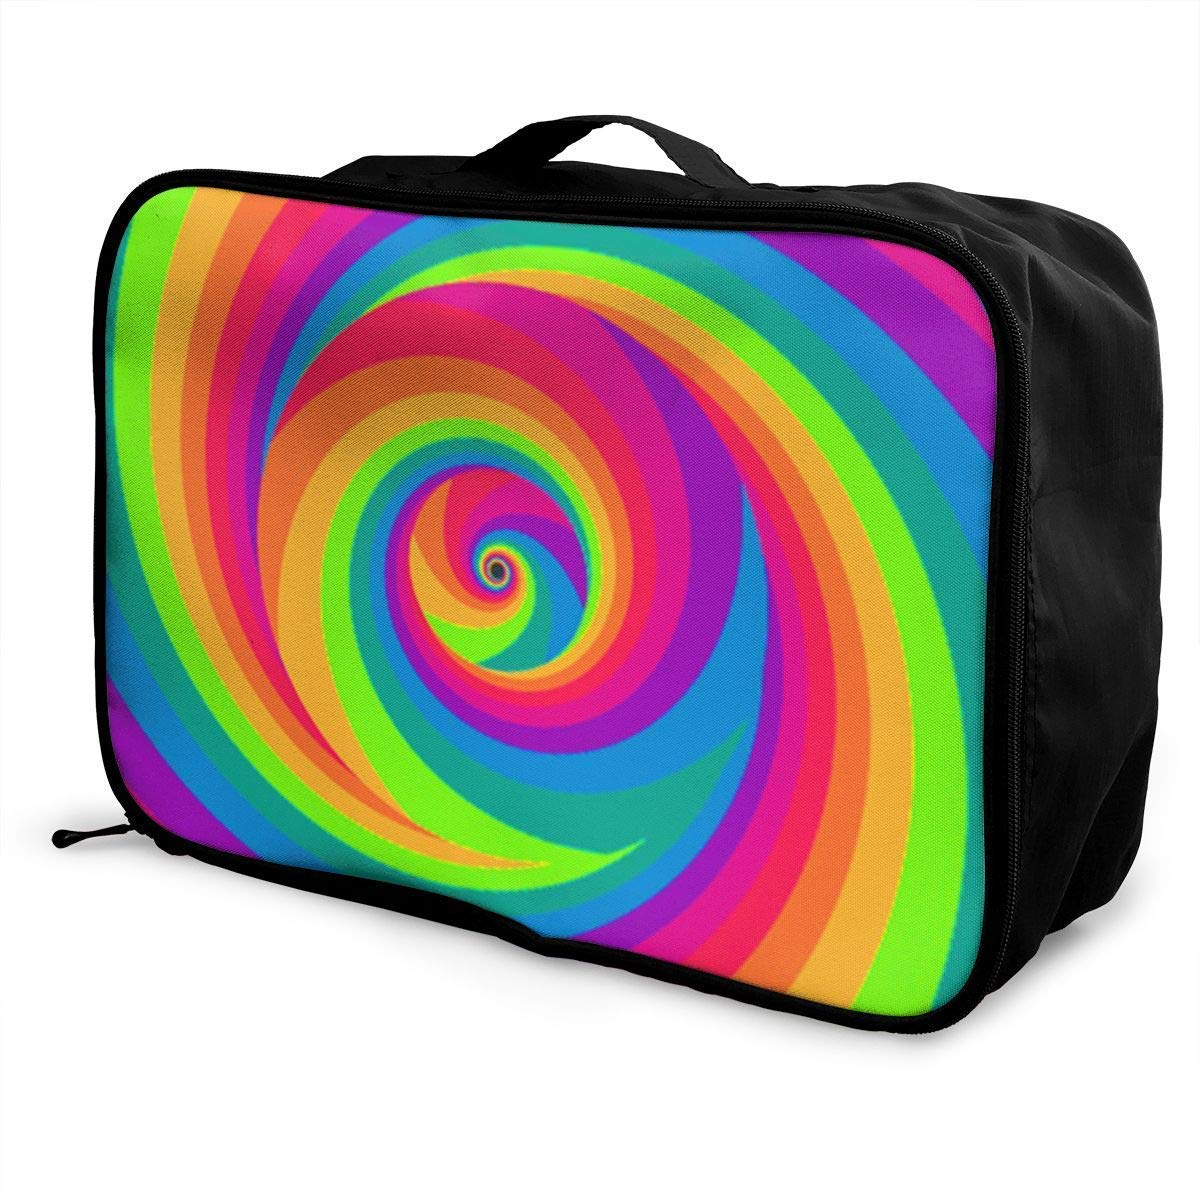 Portable Luggage Duffel Bag Colorful Tie Dye Travel Bags Carry-on in Trolley Handle JTRVW Luggage Bags for Travel